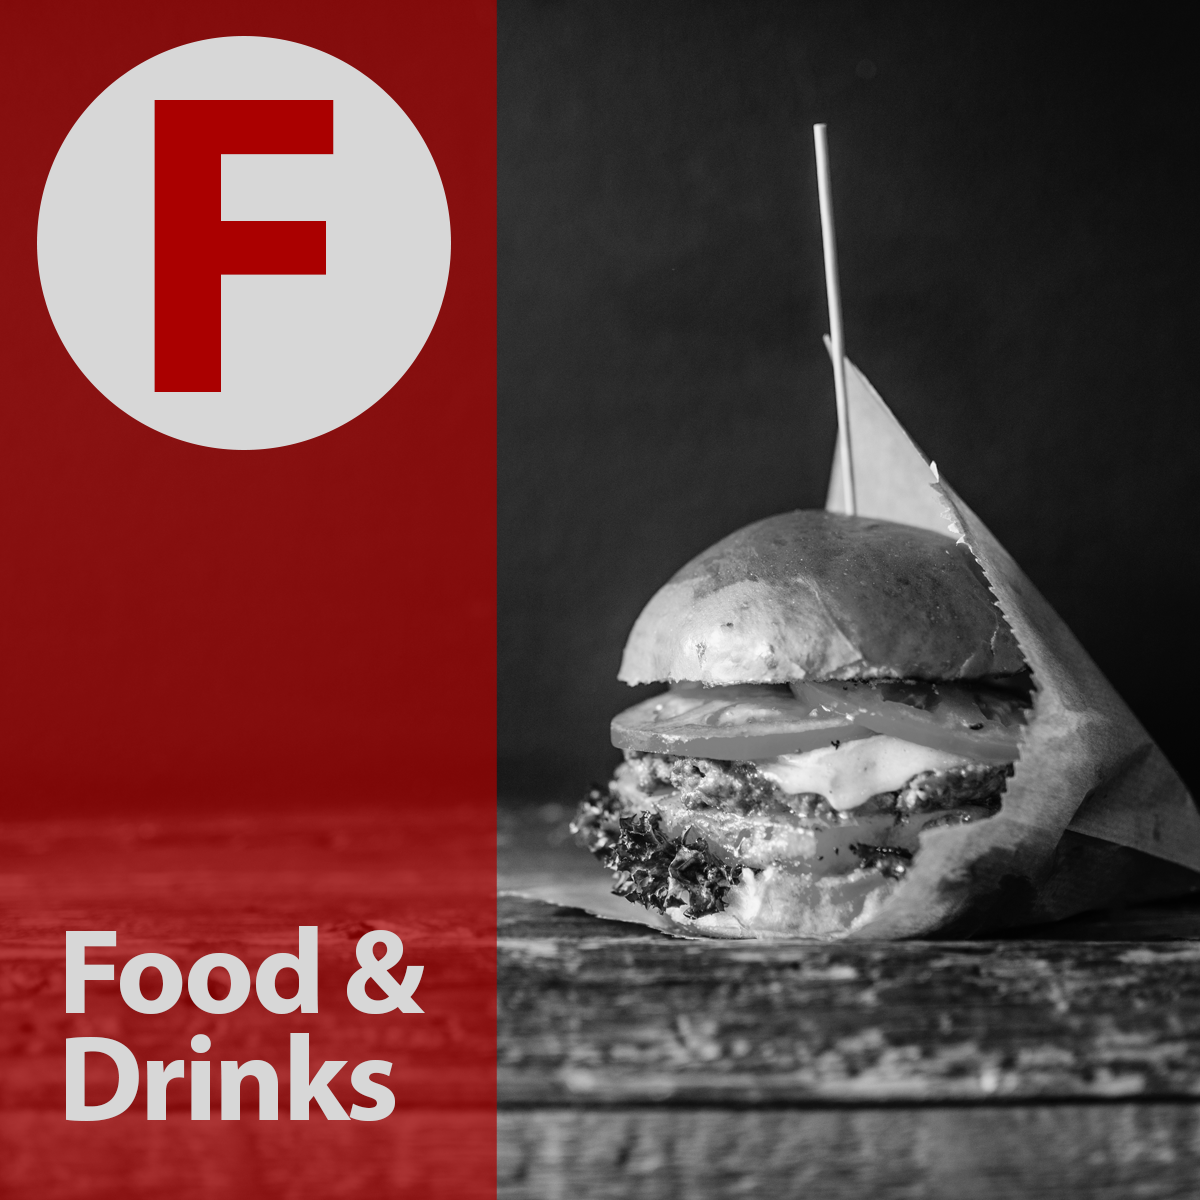 Food & Drinks Tile.png